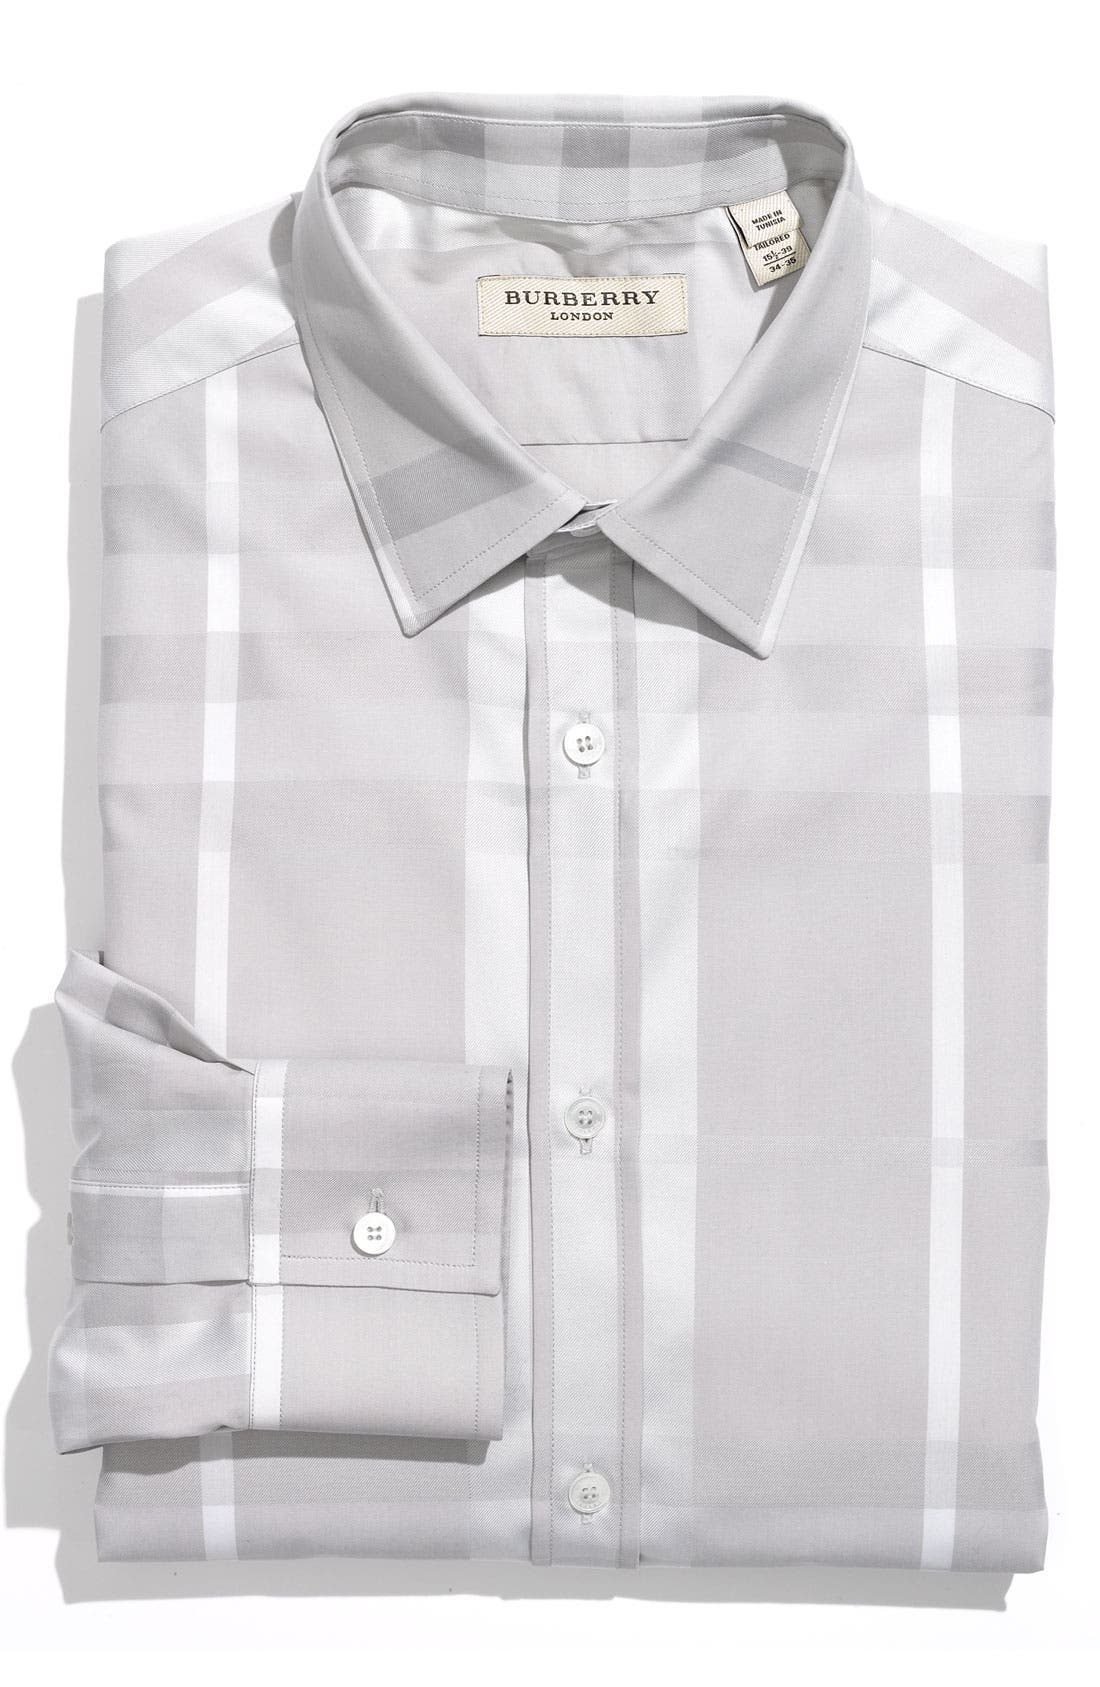 Main Image - Burberry London Tailored Fit Dress Shirt